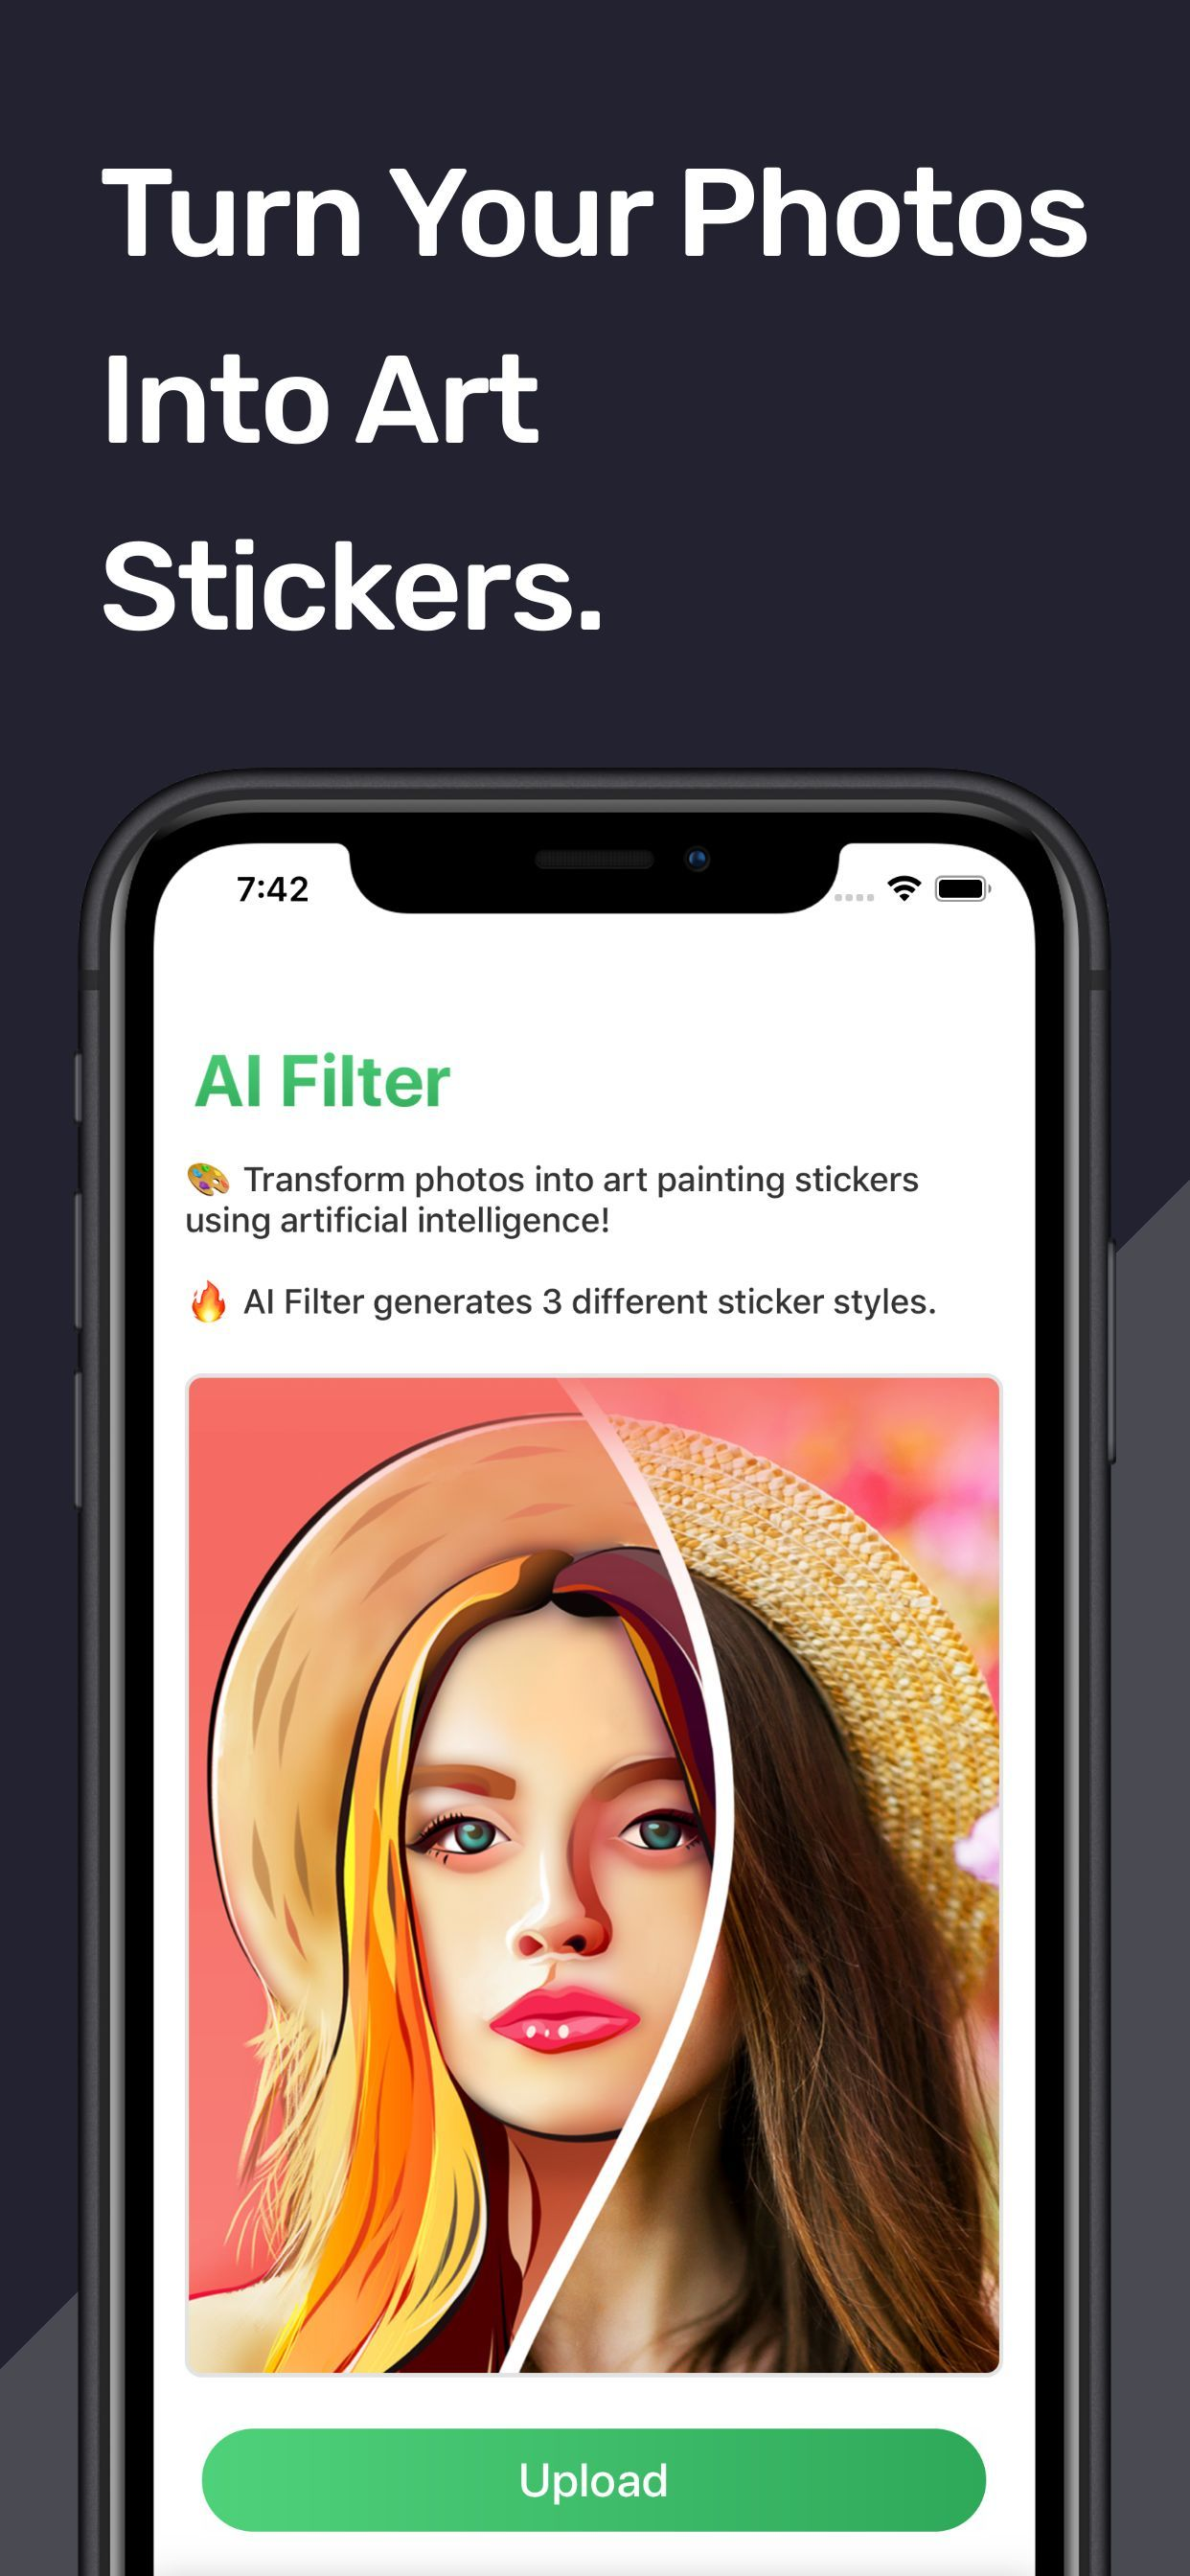 iPhone XS Max Screenshot 23 template. Quickly edit fonts, text, colors, and more for free.